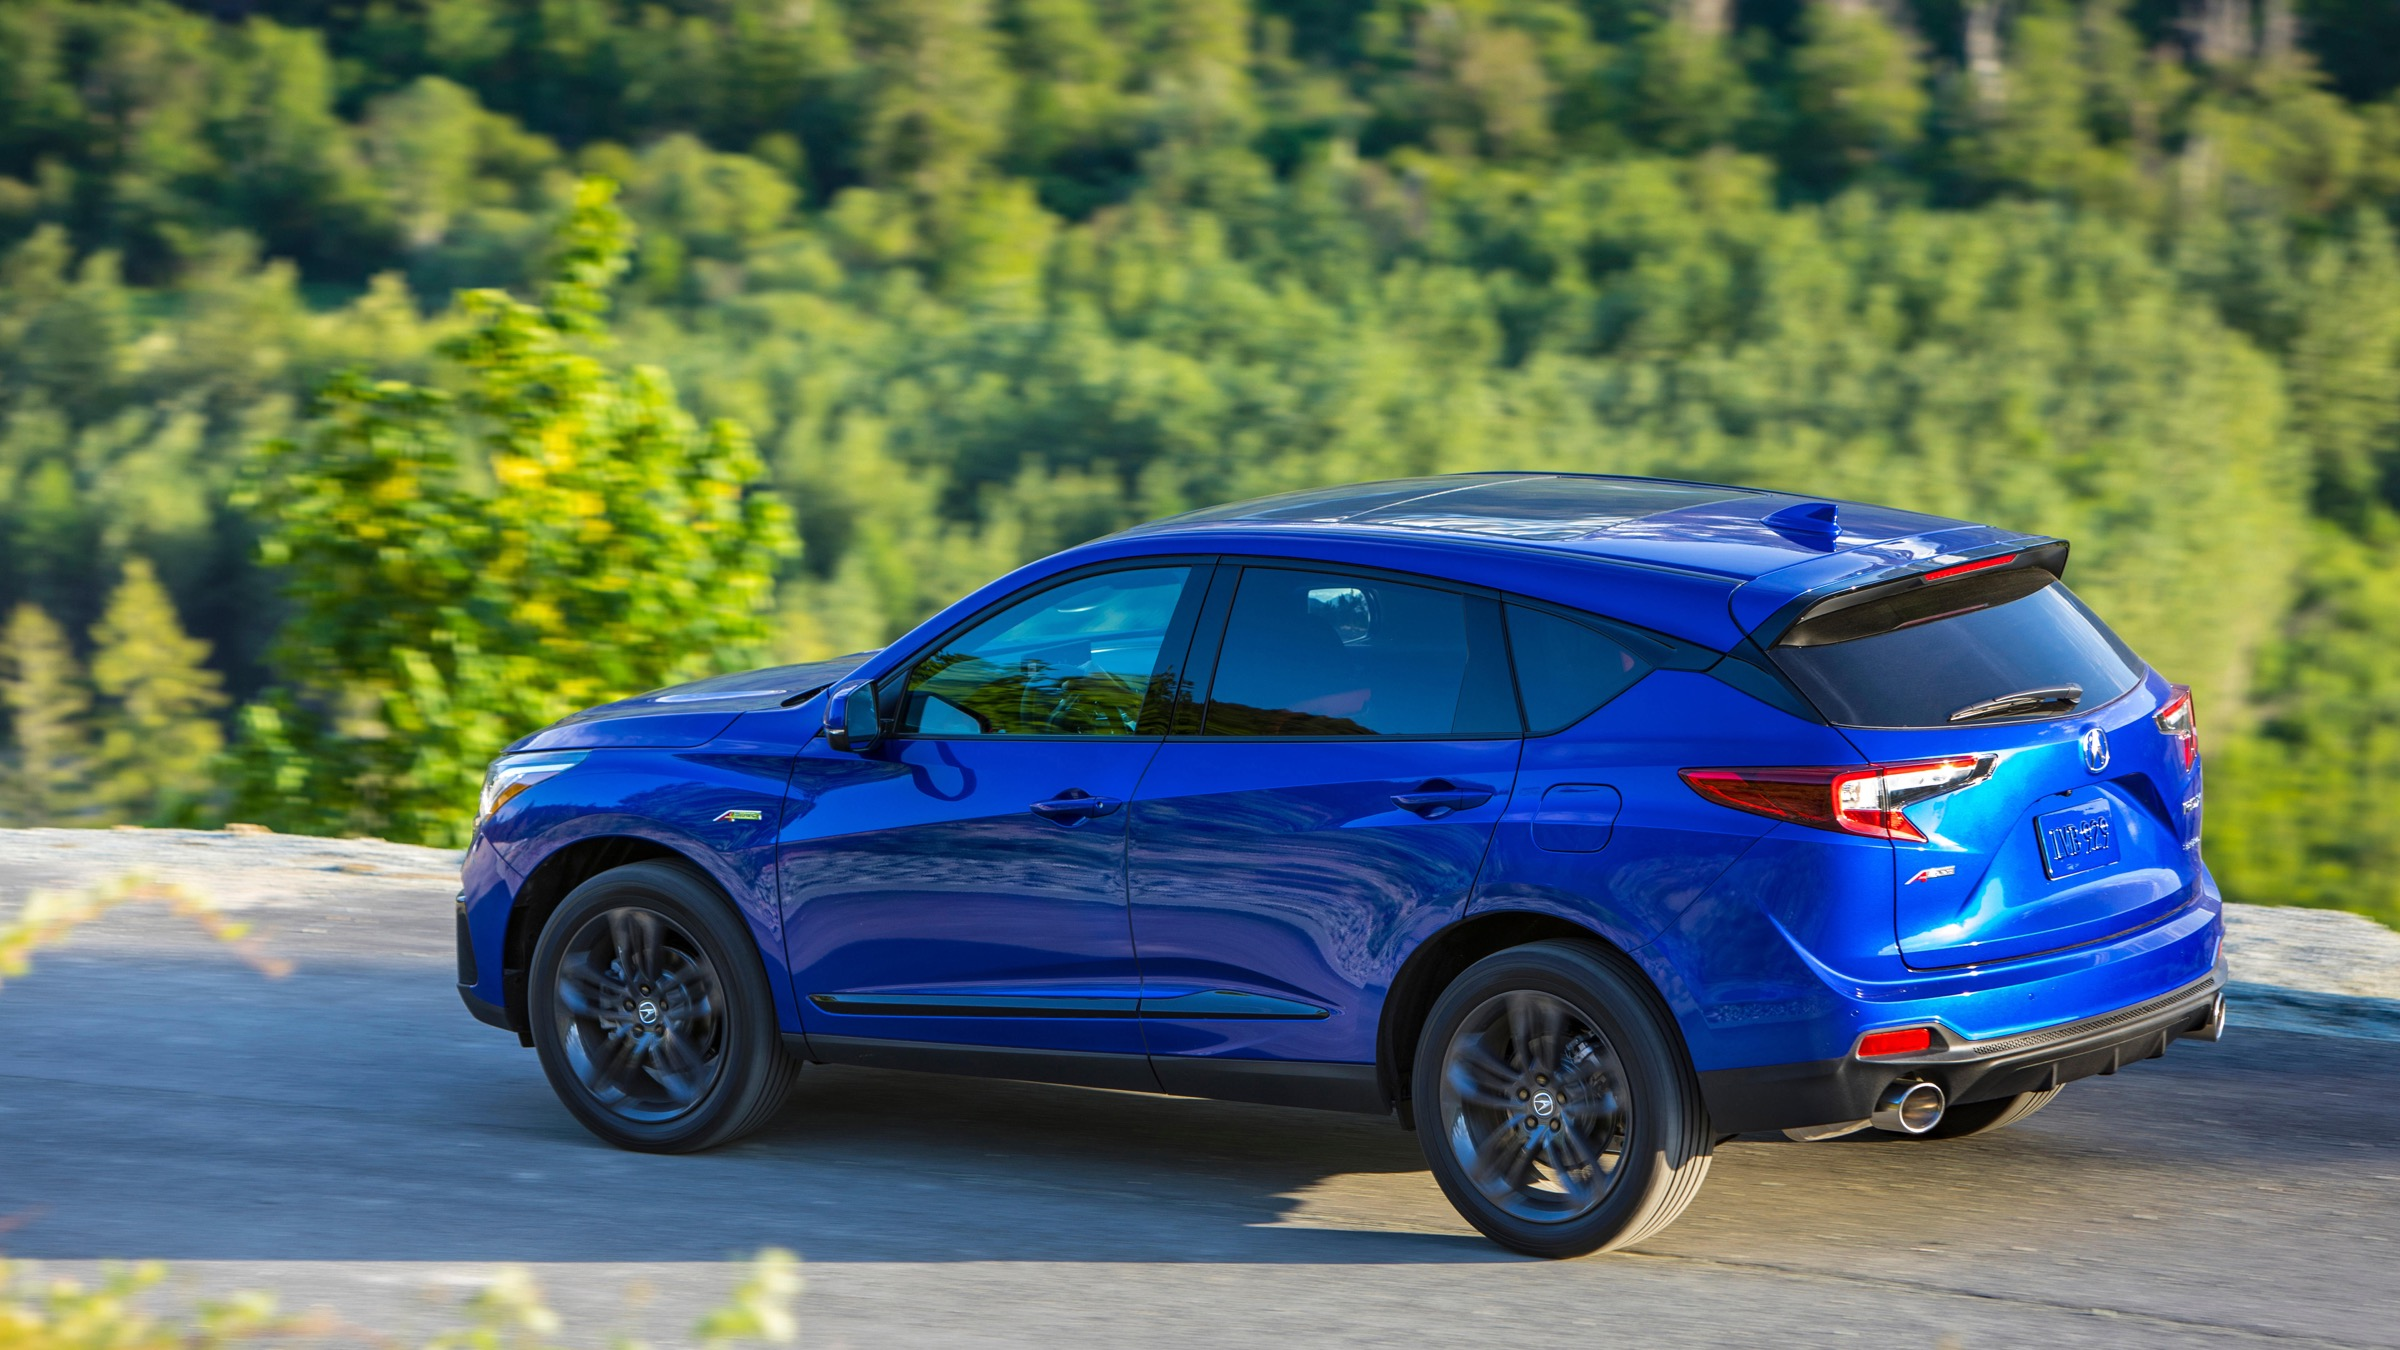 2020 Acura Rdx Review And Buying Guide Specs Features Photos